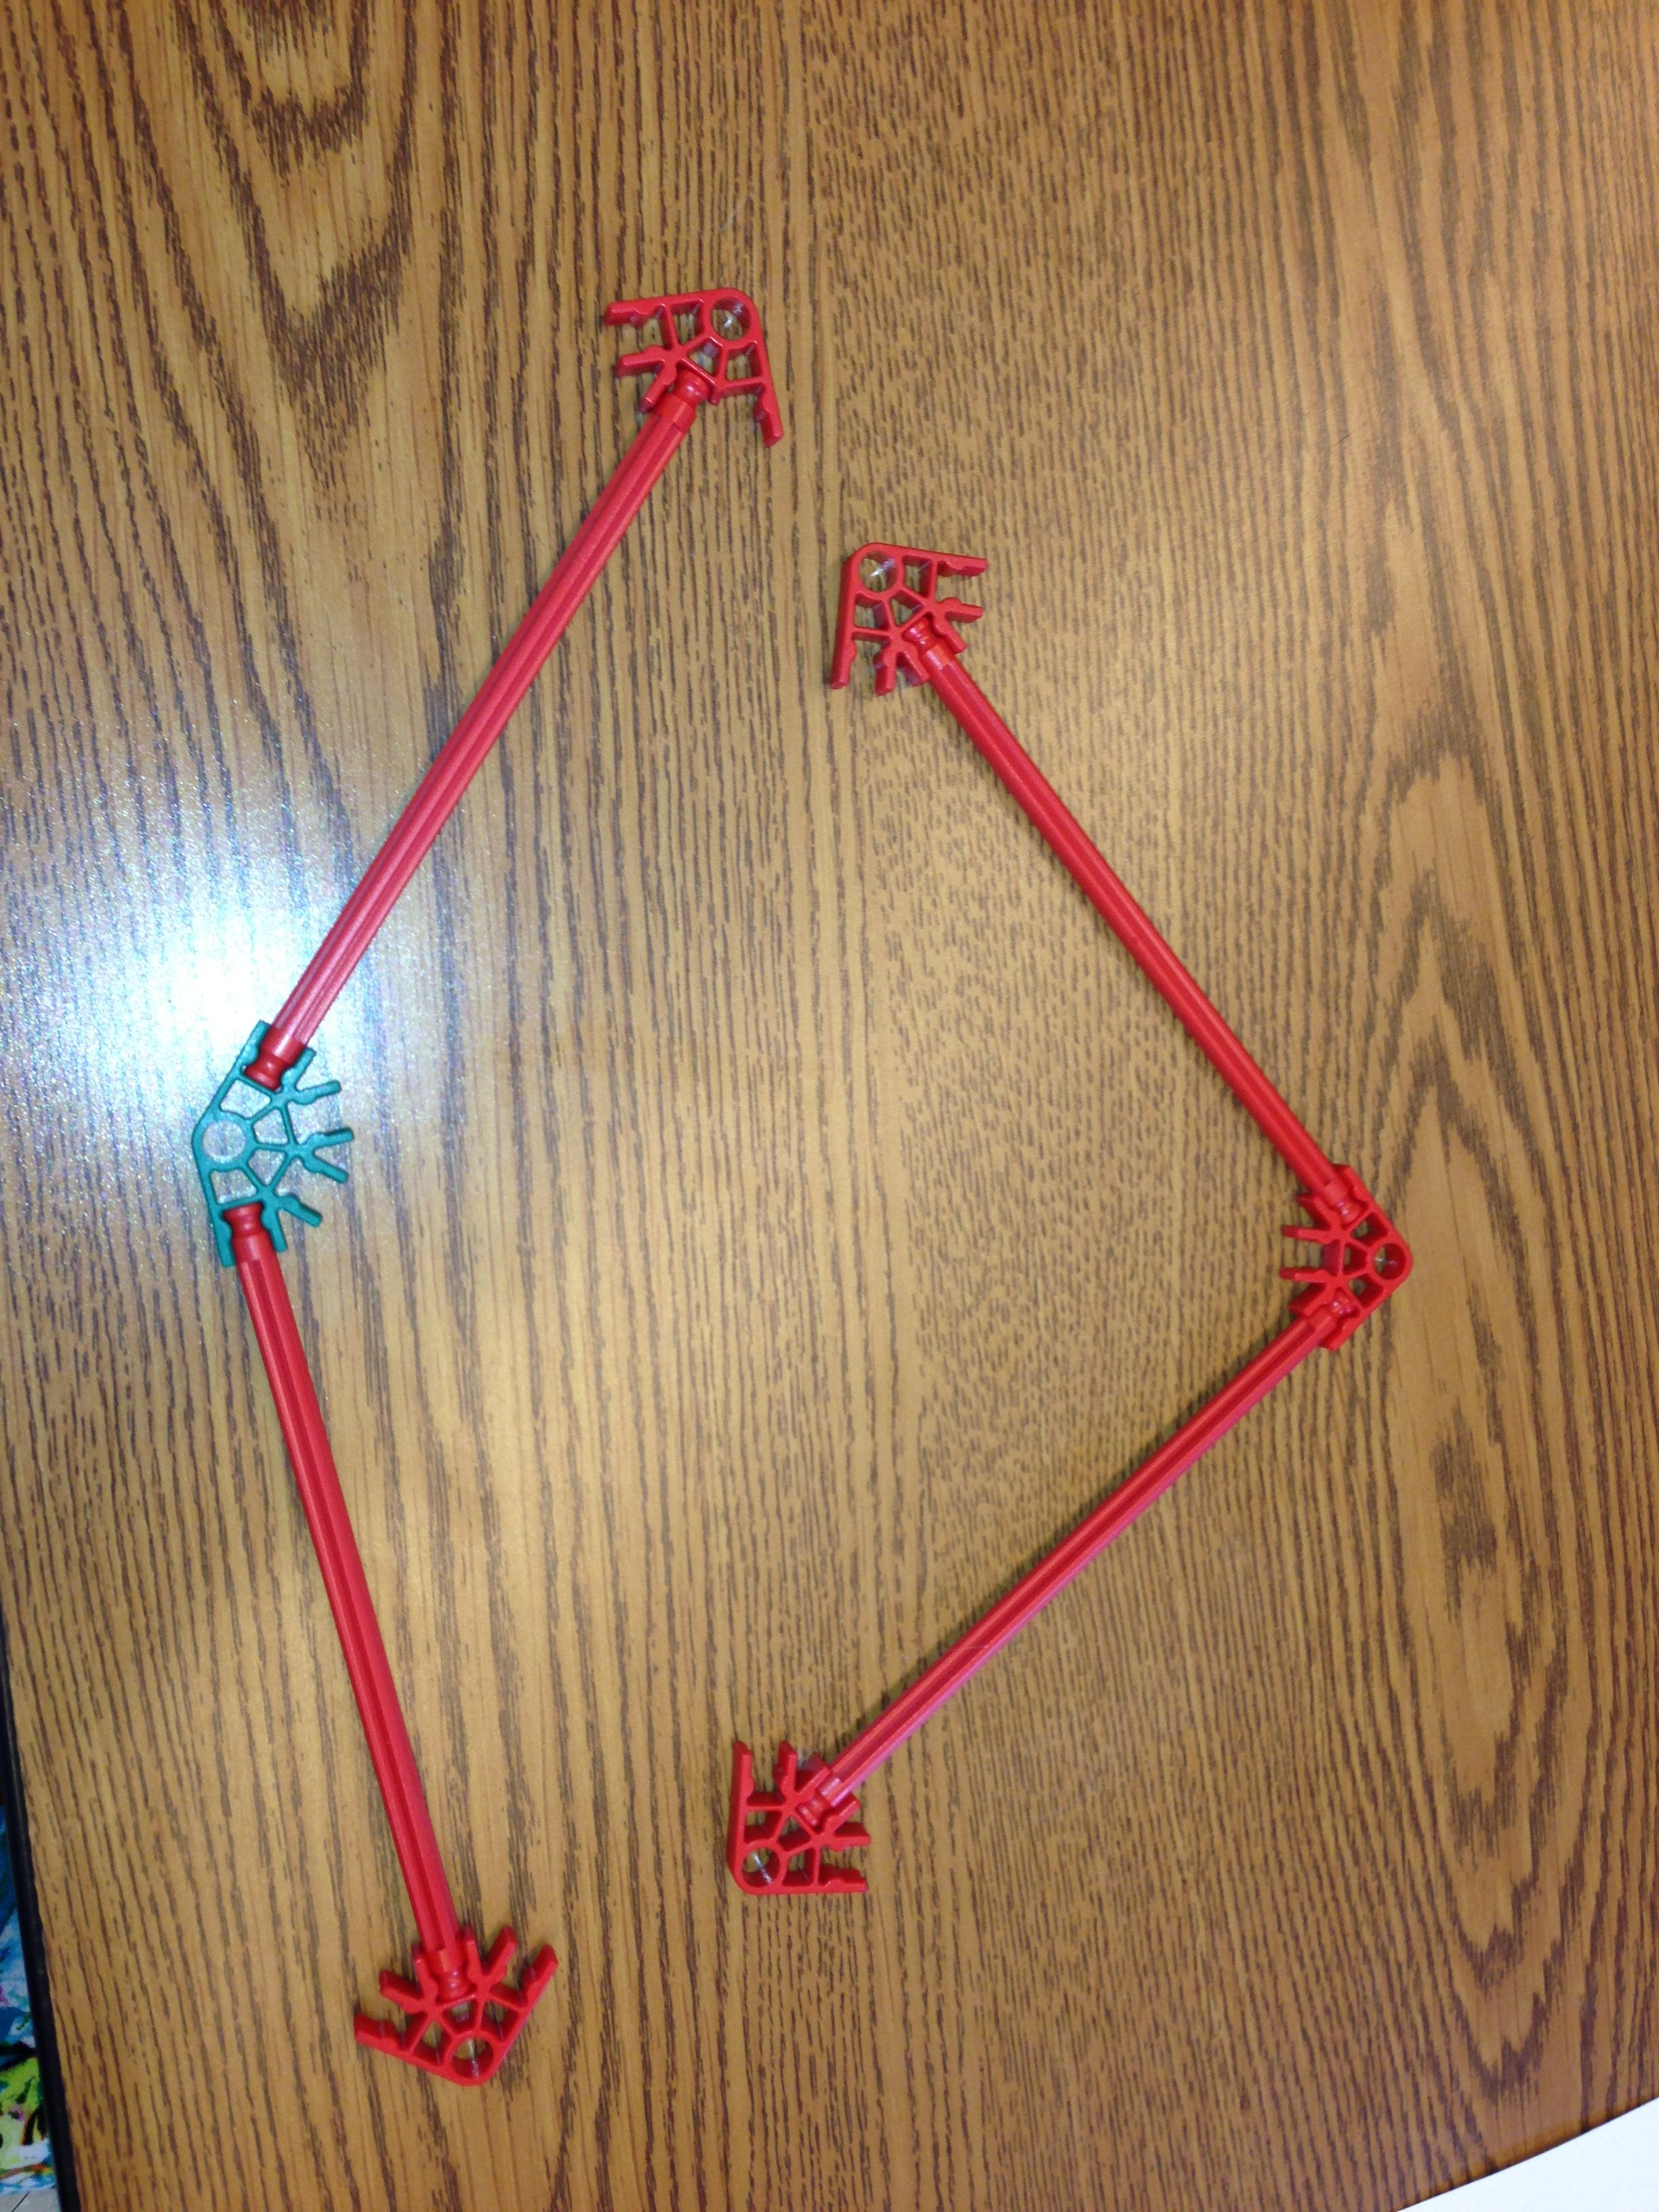 A 90 Degree Angle And 145 Degree Angle Using K Nex This Teaches Children How To Create And Measure Angles Using The Aesthetic Teaching Kids Math Segmentation [ 3264 x 2448 Pixel ]